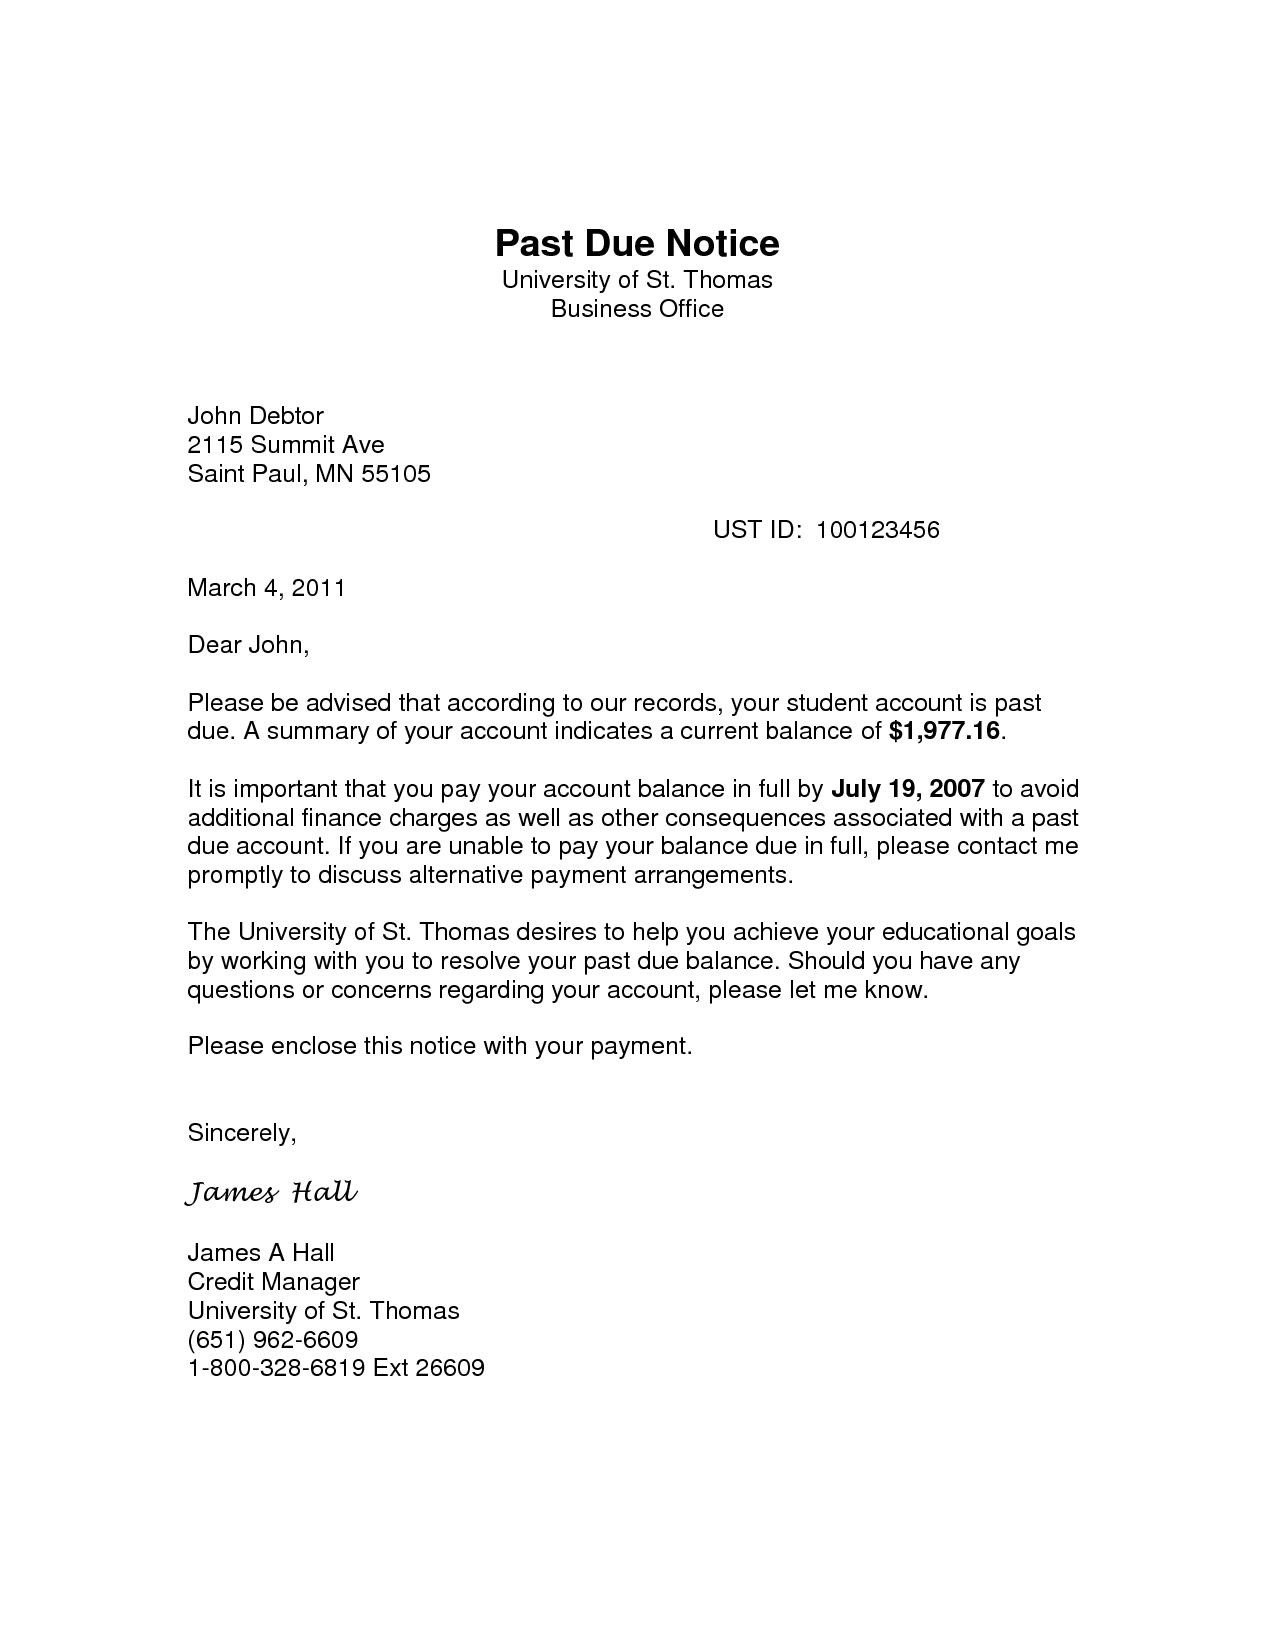 Late Rent Letter Template - Past Due Notice Acurnamedia